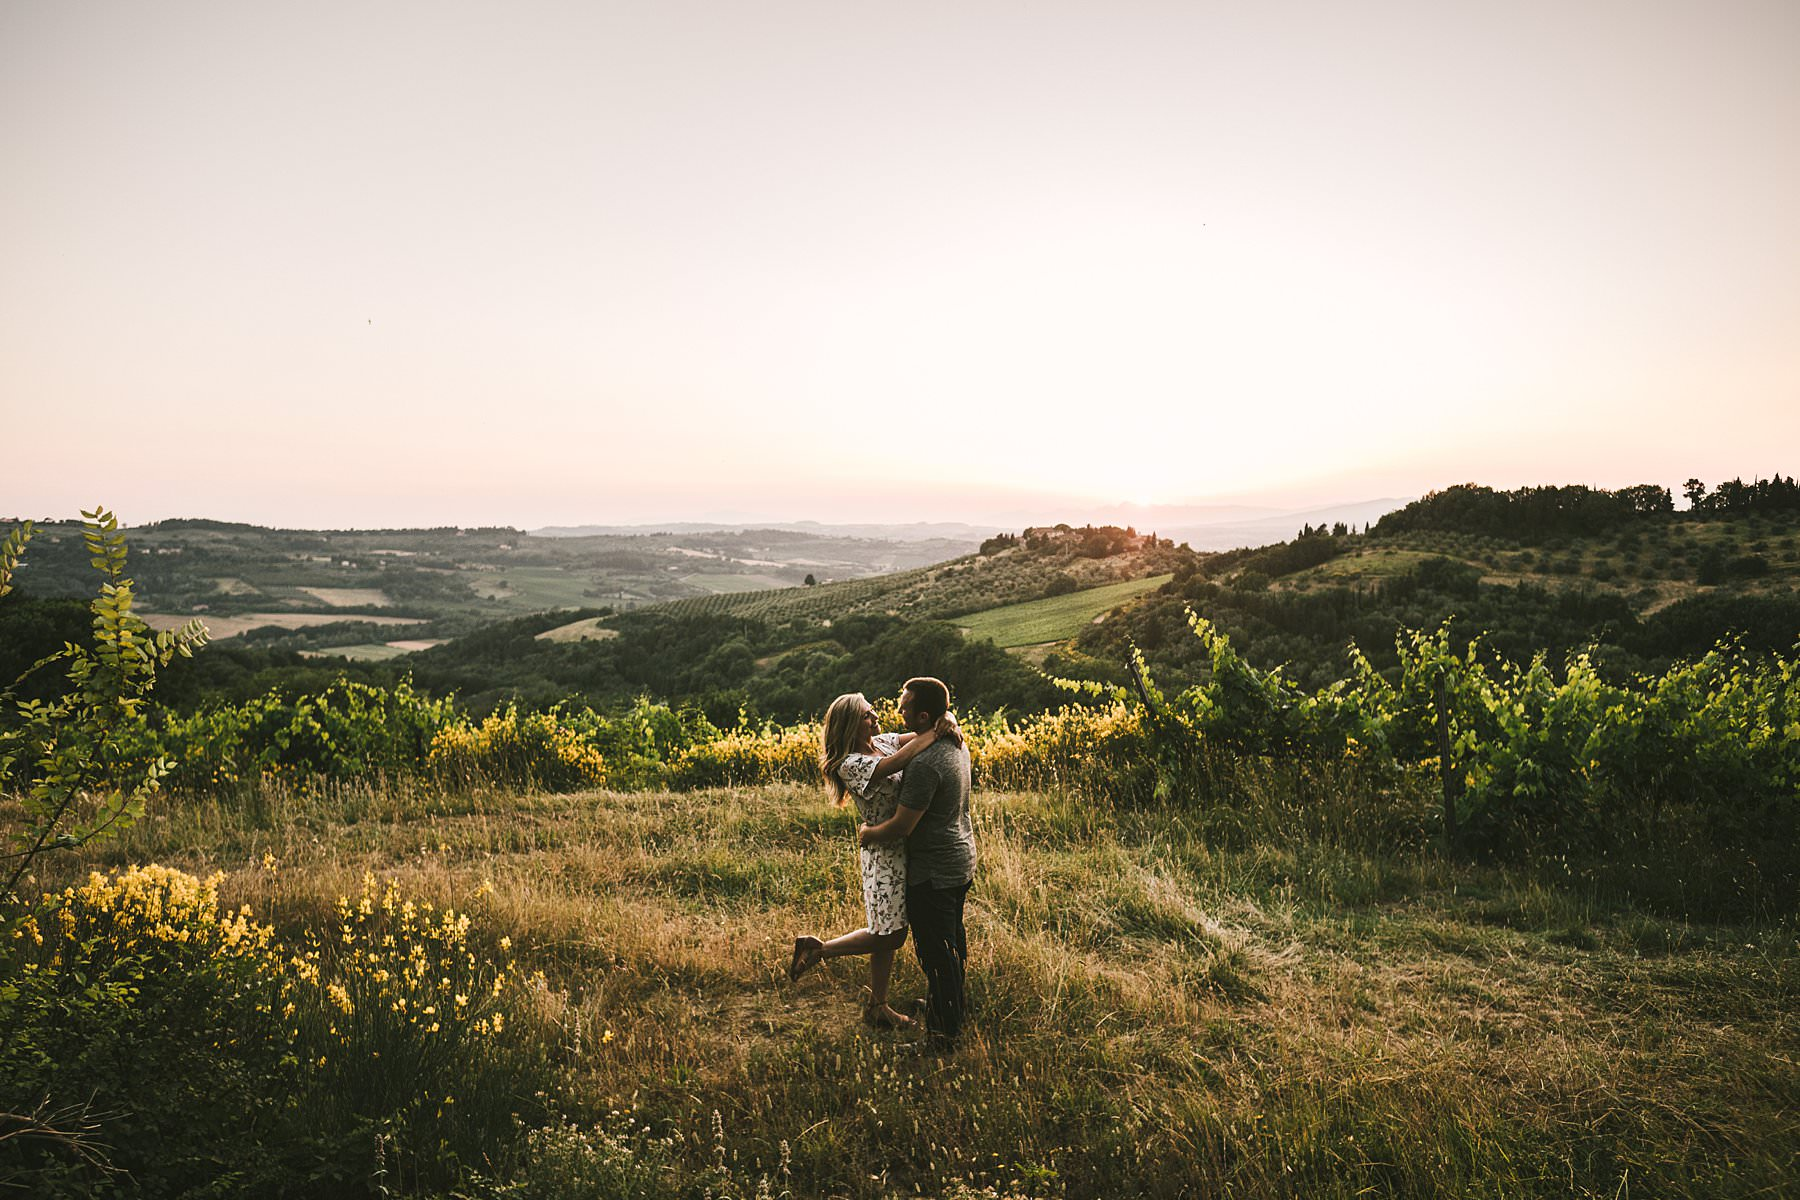 Delicate outdoor engagement photos in Tuscany: a holiday to remember. When you happen to visit a charming city like Florence and you've recently got engaged, there is only one thing you can do: get outdoor engagement photos taken in the best spots of the town and countryside. They will allow you to honor that precious moment and keep a never ending memory of a unique holiday. This is what brought Andrea and Aaron to contact me on a summer day…